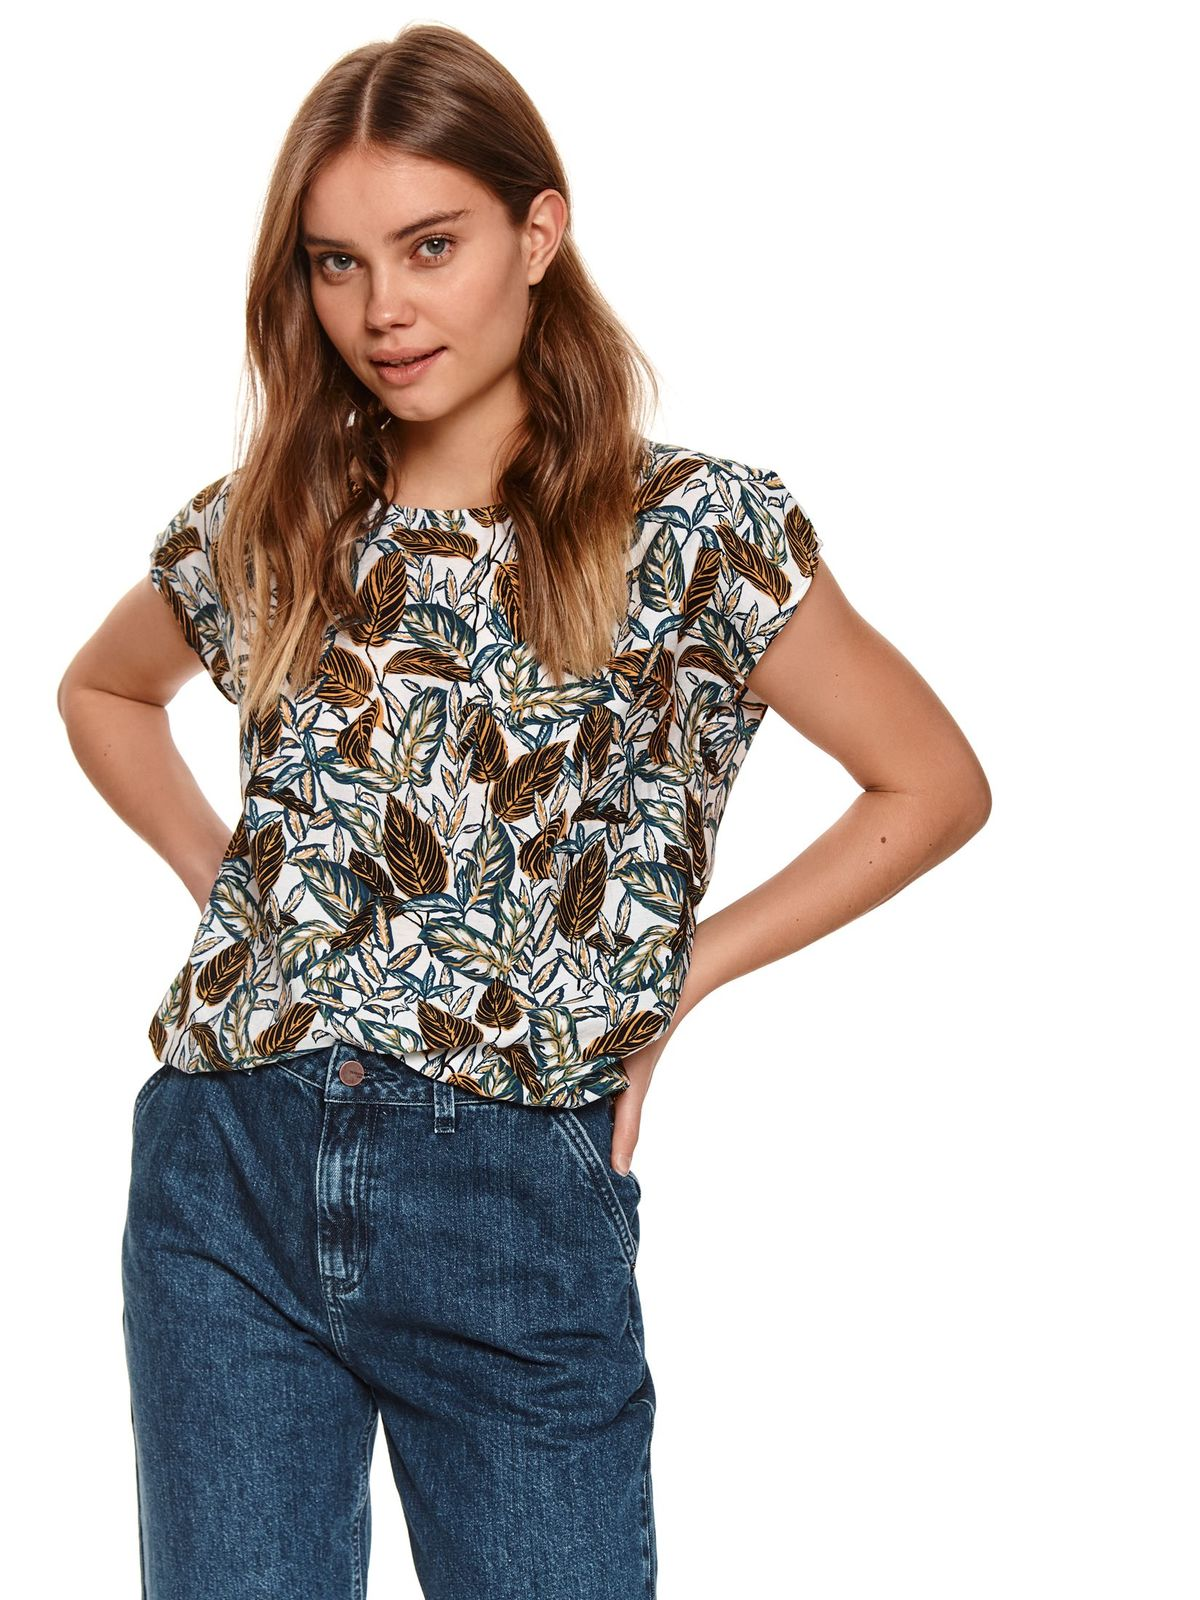 Women`s blouse with floral print loose fit from elastic fabric with rounded cleavage